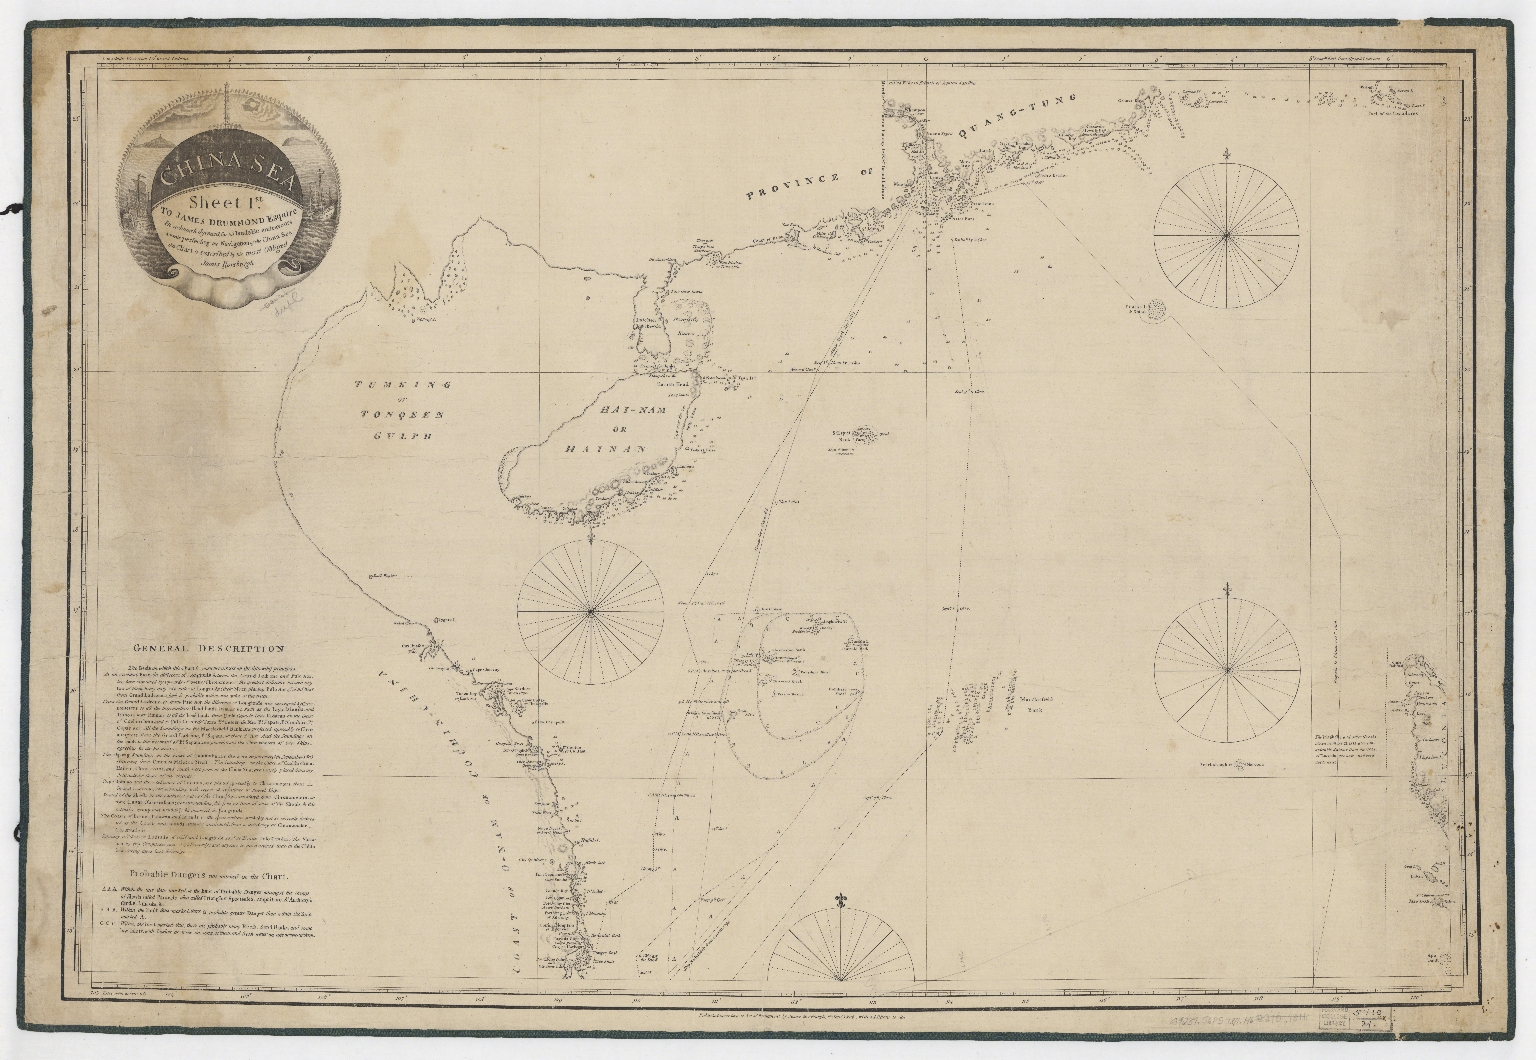 China Sea. Sheet 1.st to James Drummond Esquire in acknowledgement for his laudable endeavours towards perfecting the navigation of the China Sea